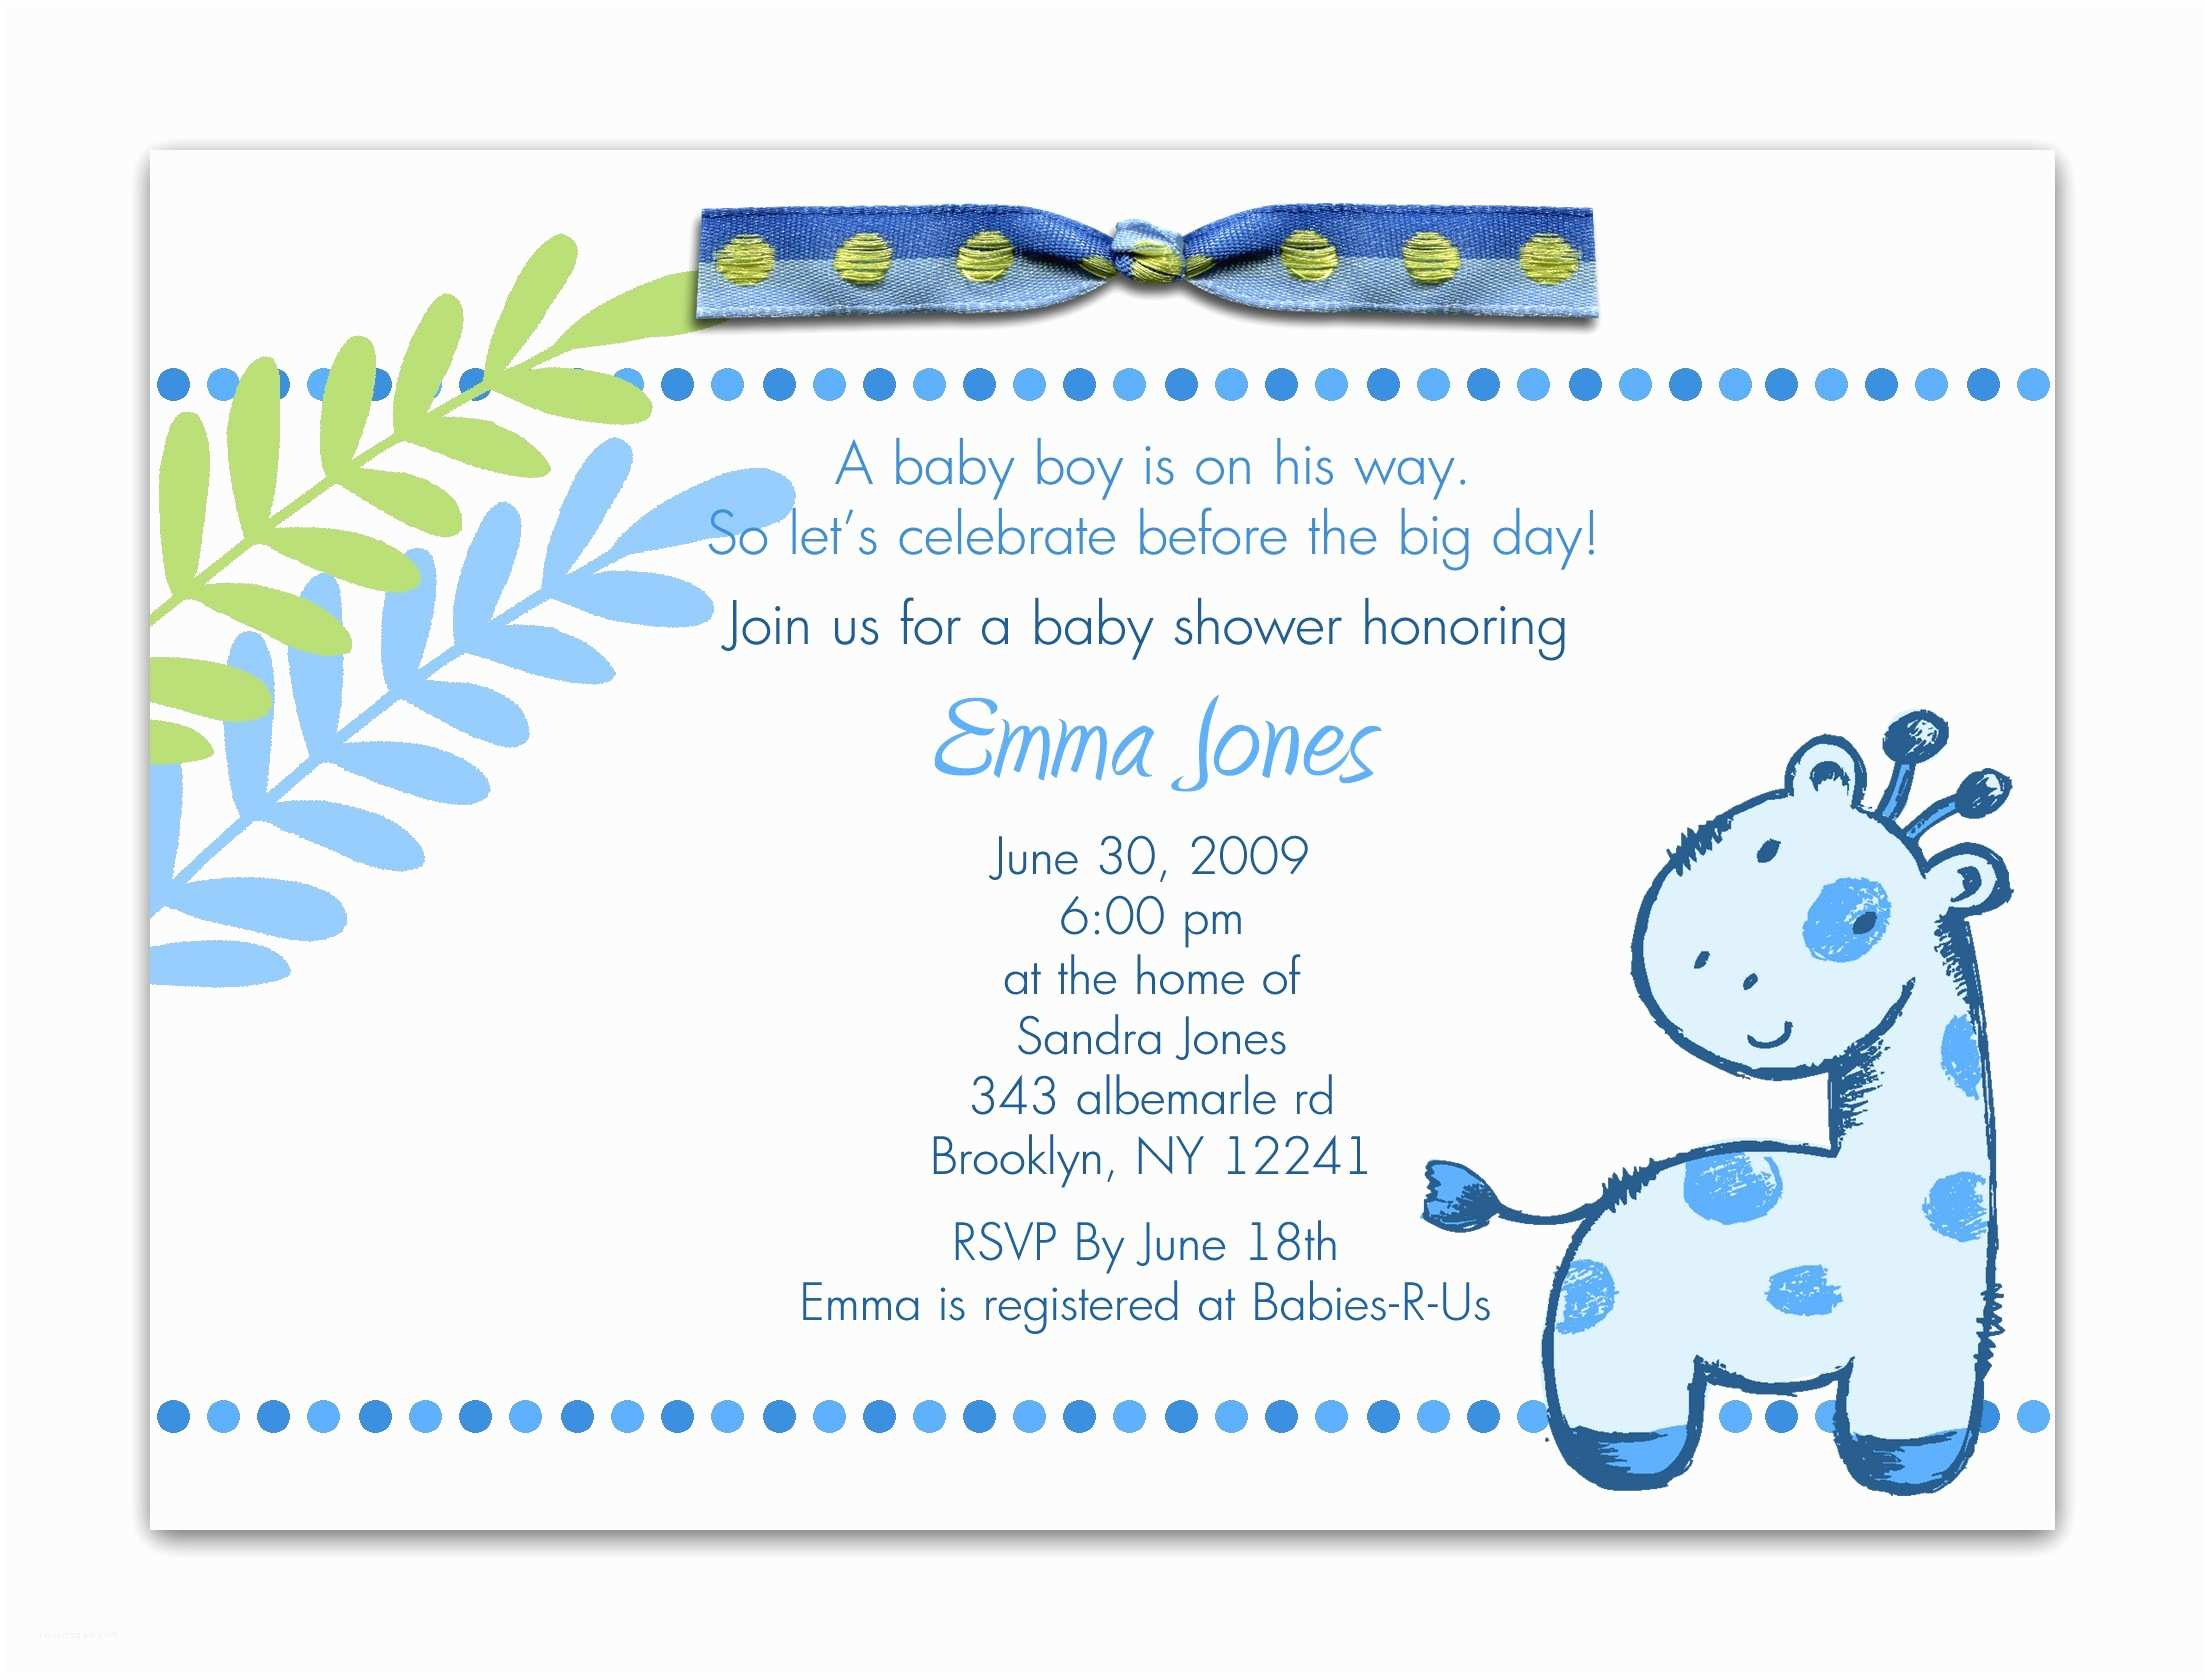 Baby Shower Invitation for Boy Baby Shower Invitation Wording for A Boy